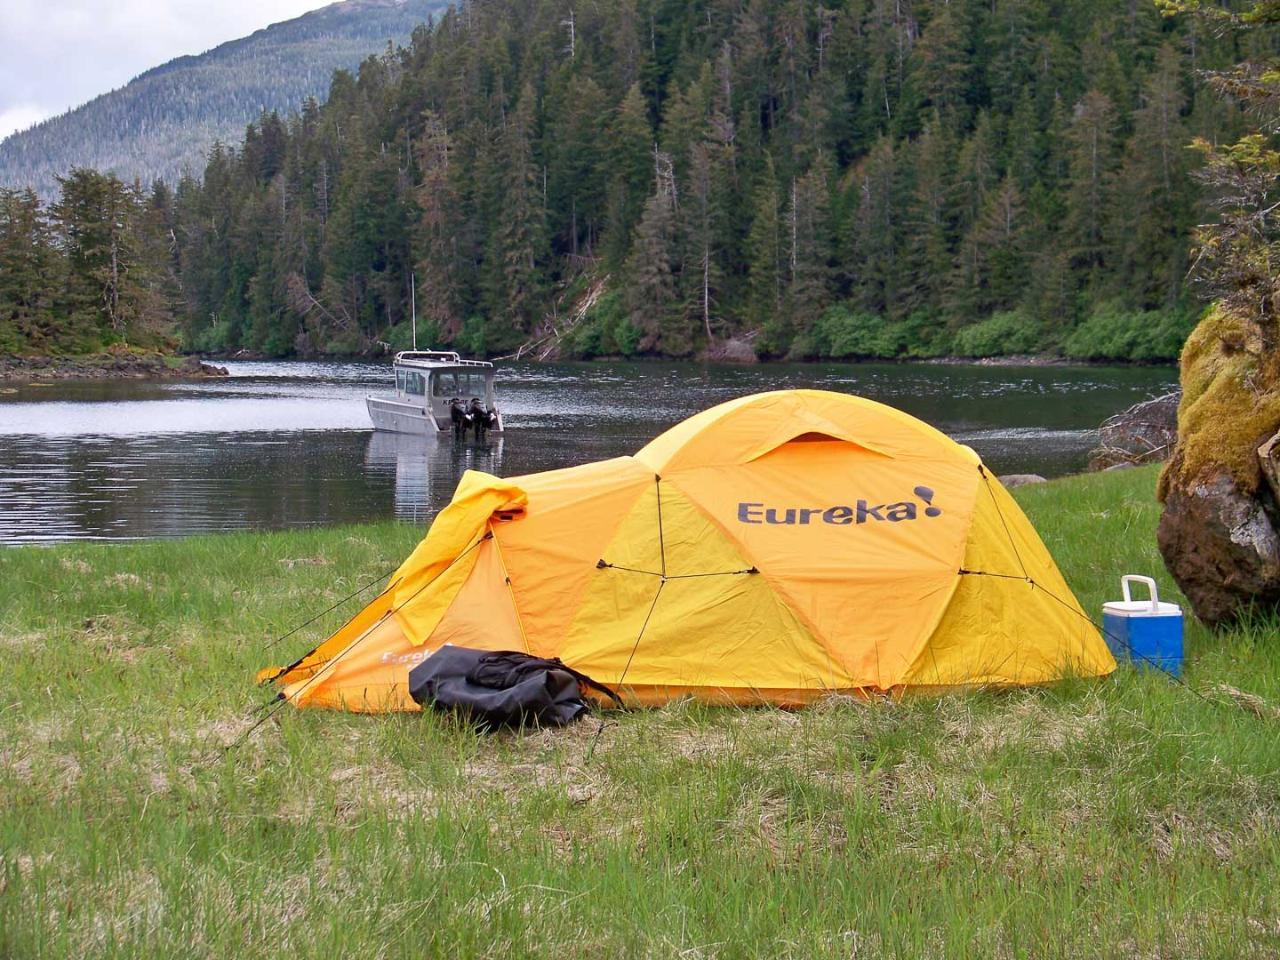 Tent Camping Equipment for 2 People